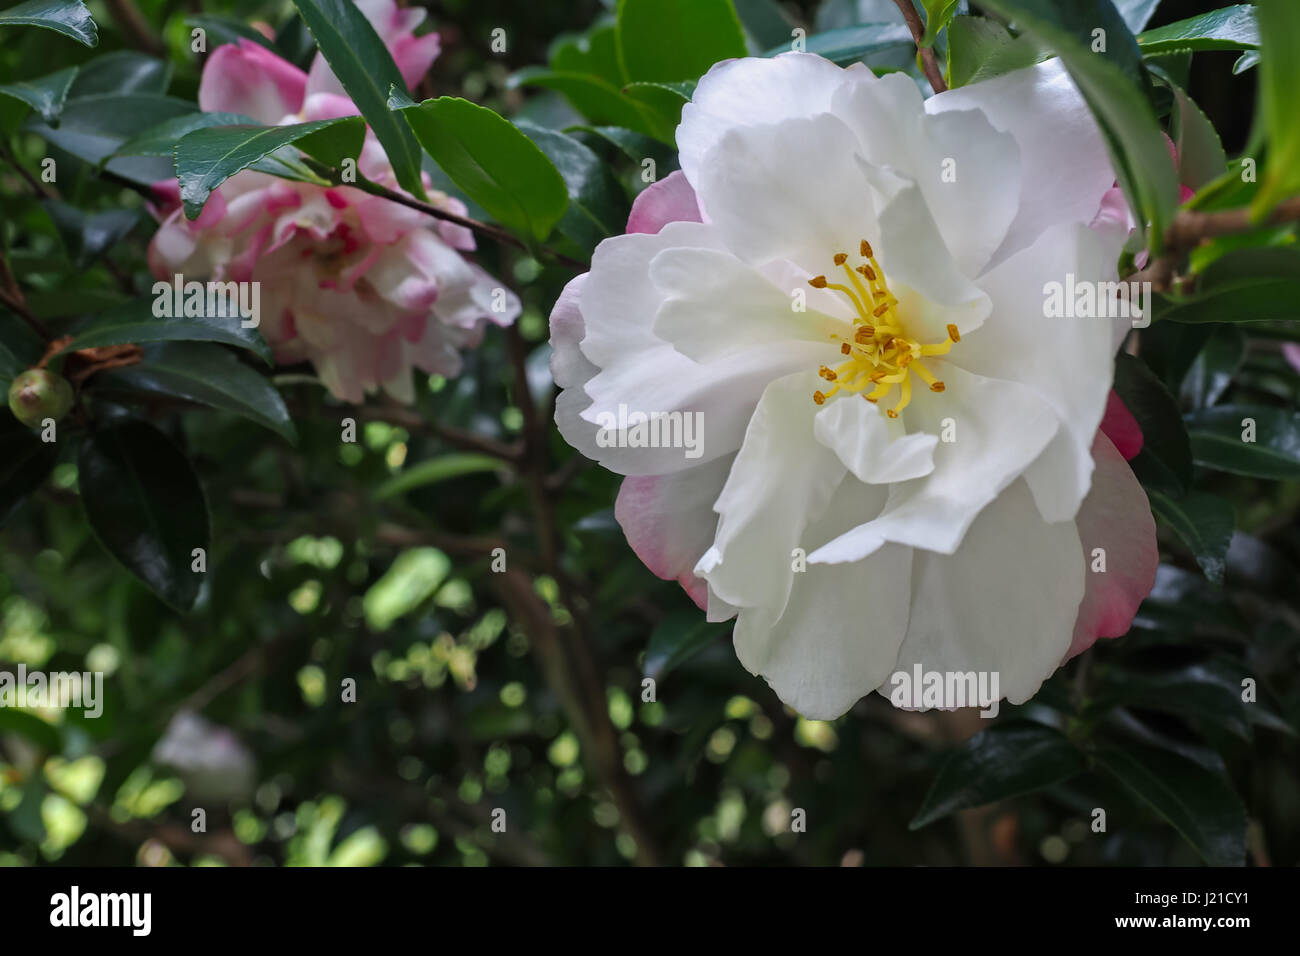 Bright white camellia flowers with pink and red edging on the tree bright white camellia flowers with pink and red edging on the tree surrounded by deep green leaves mightylinksfo